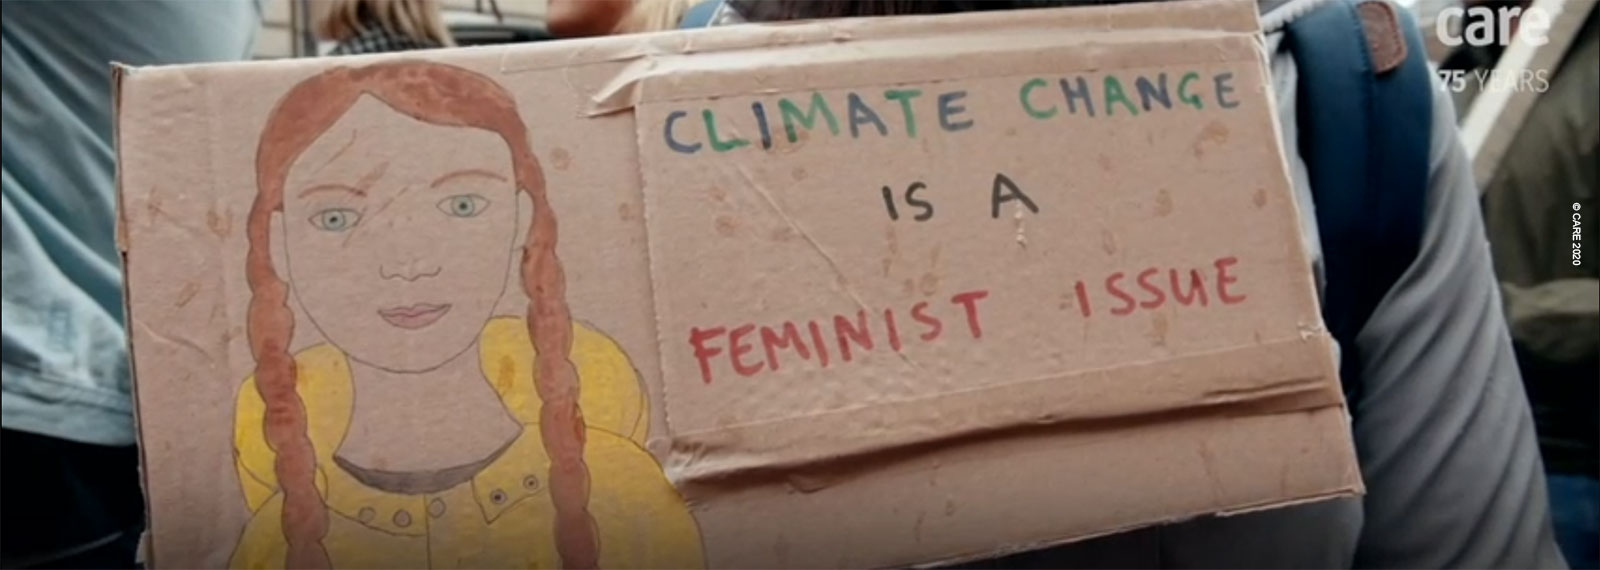 Climate change is a feminist issue - placard